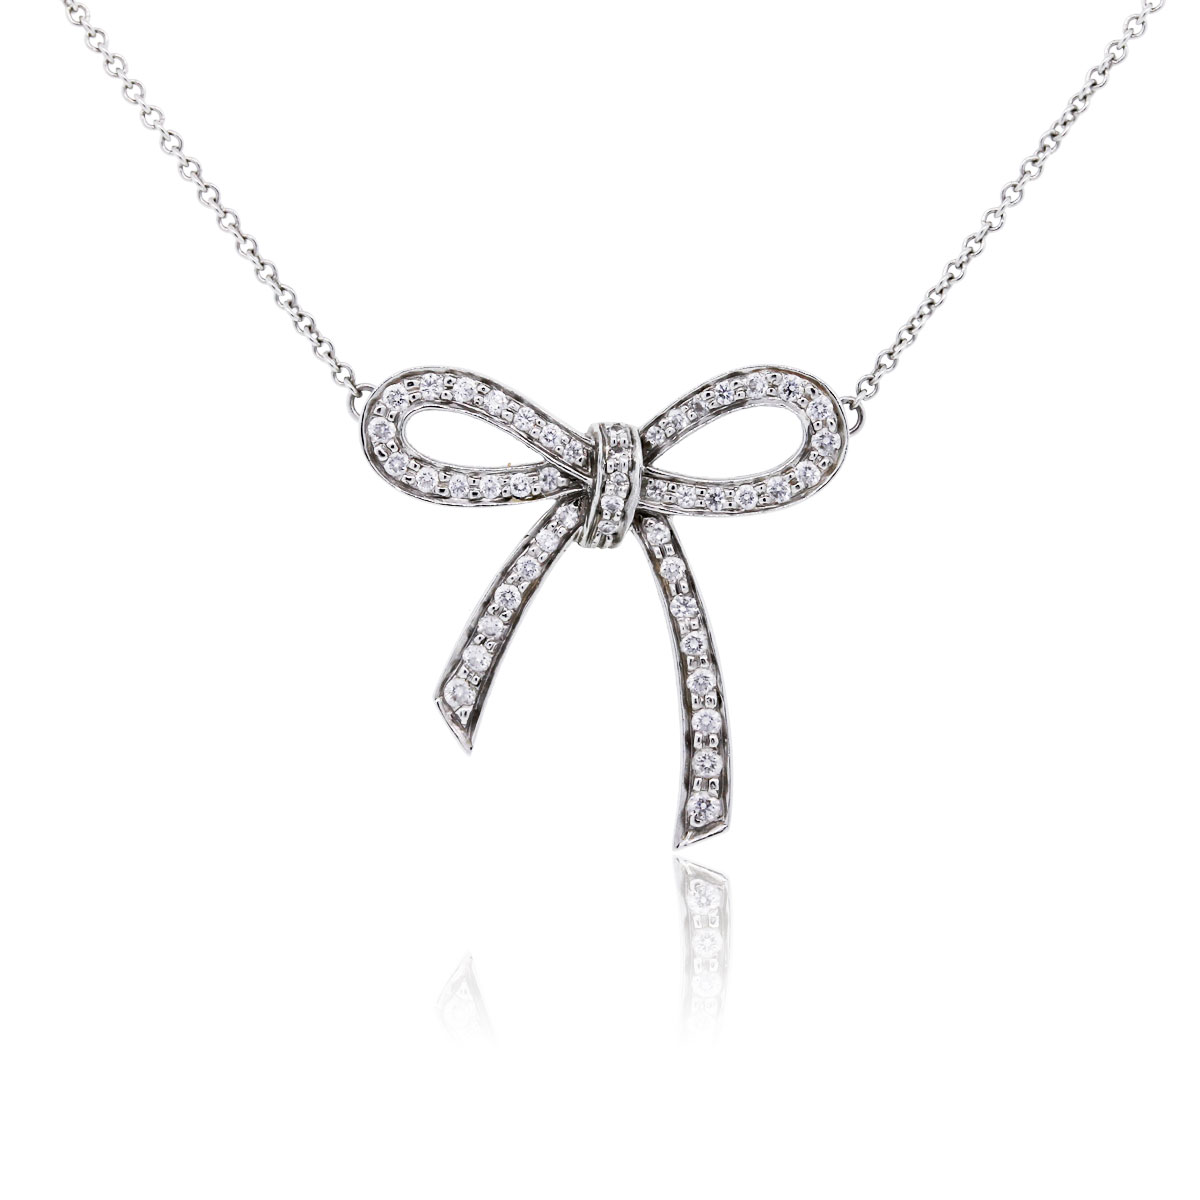 Tiffany co platinum diamond bow pendant necklace tiffany co platinum diamond bow pendant necklace tiffany co buy at truefacet aloadofball Images